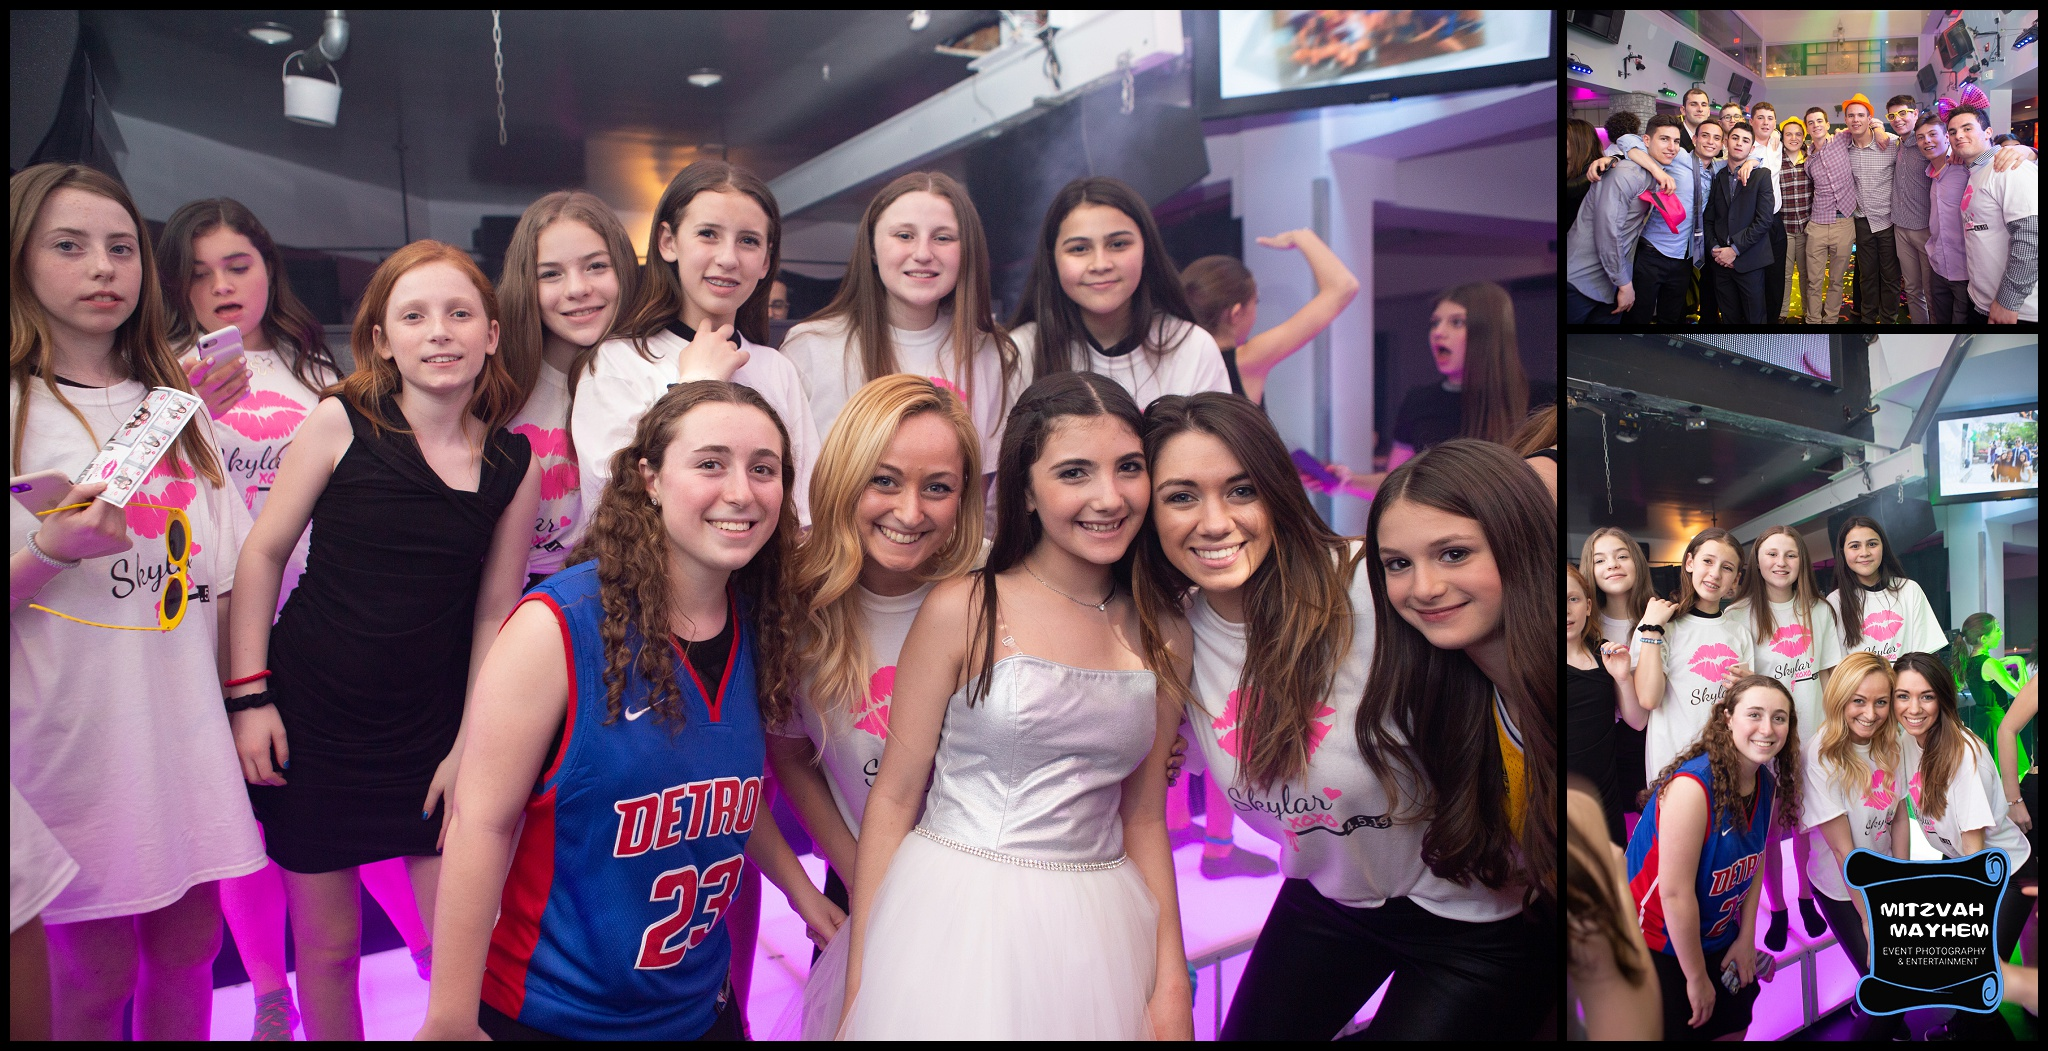 4Sixty6-Caterers-nj-bat-mitzvah-photographer-skylar-11.JPG